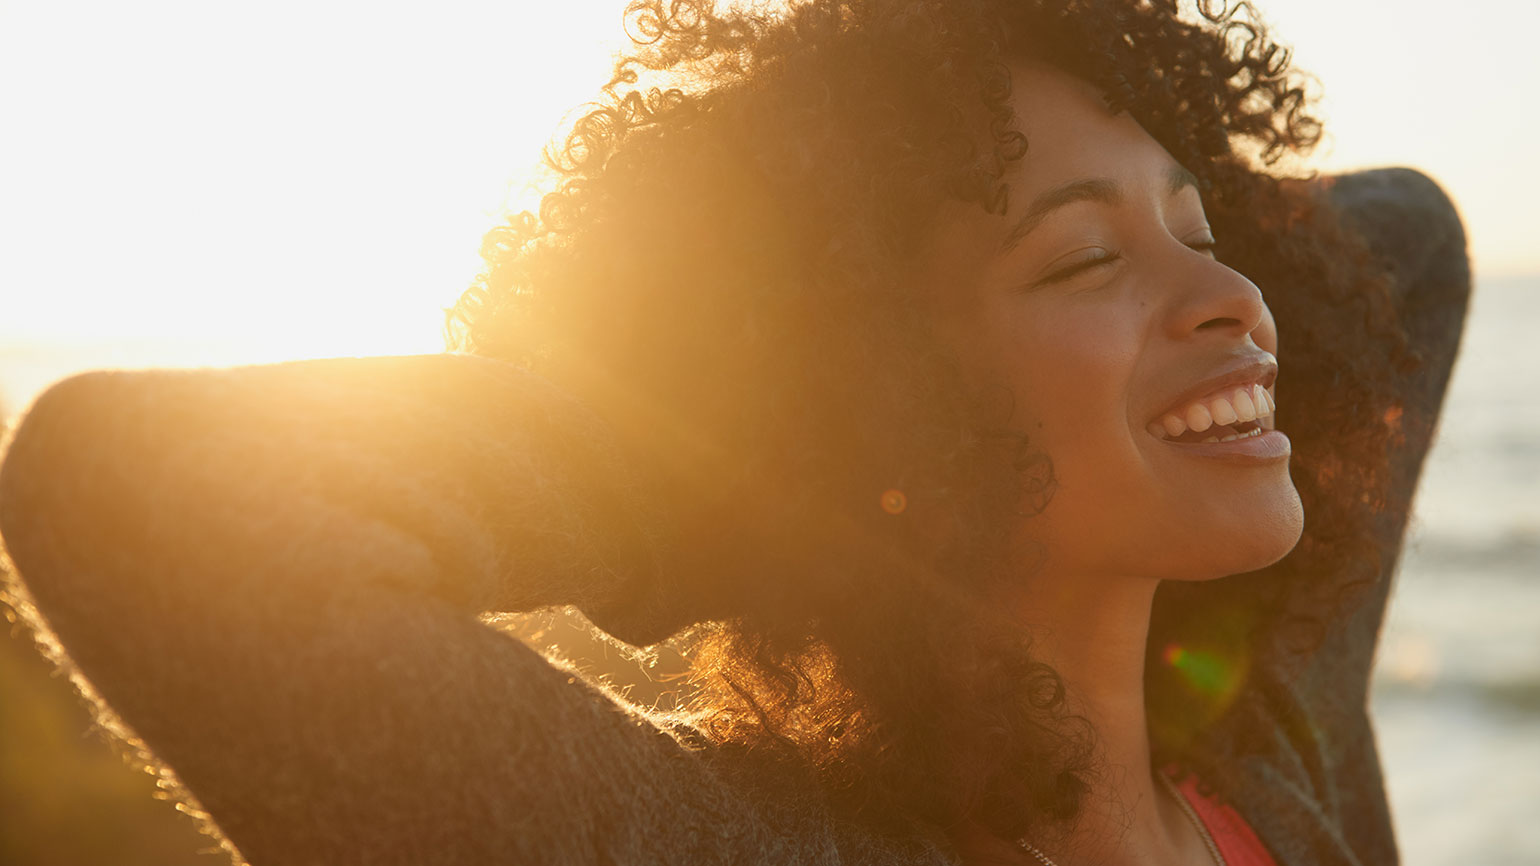 Woman smiling in the sunlight